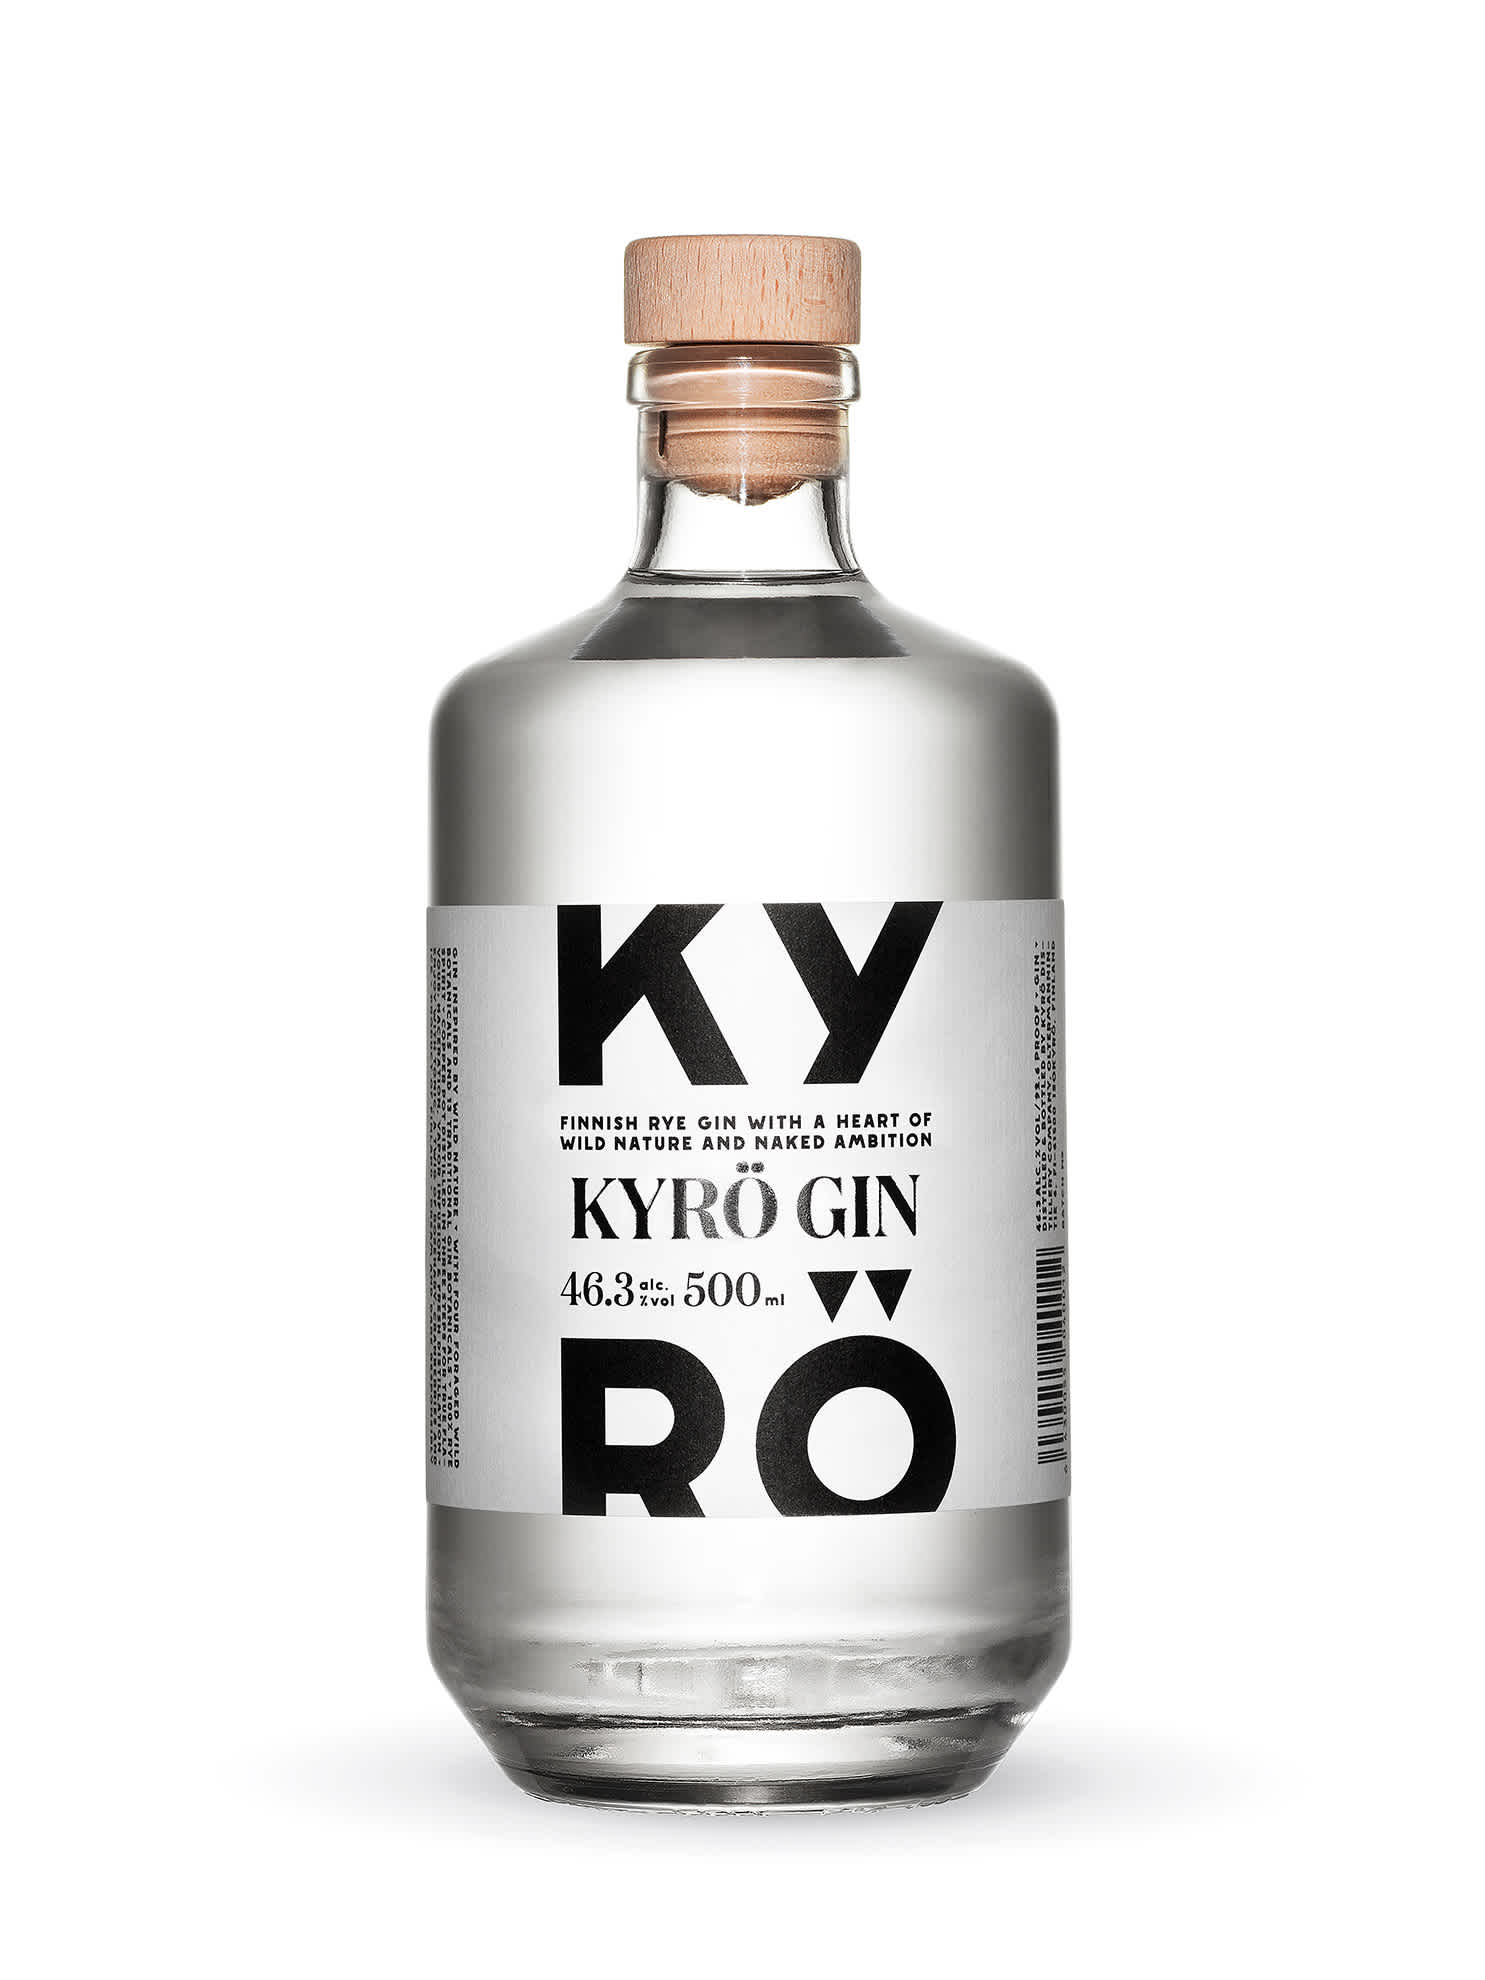 Product photo: 0,5l bottle of award-winning Kyrö Gin made with Finnish rye from the Kyrö Distillery Company.